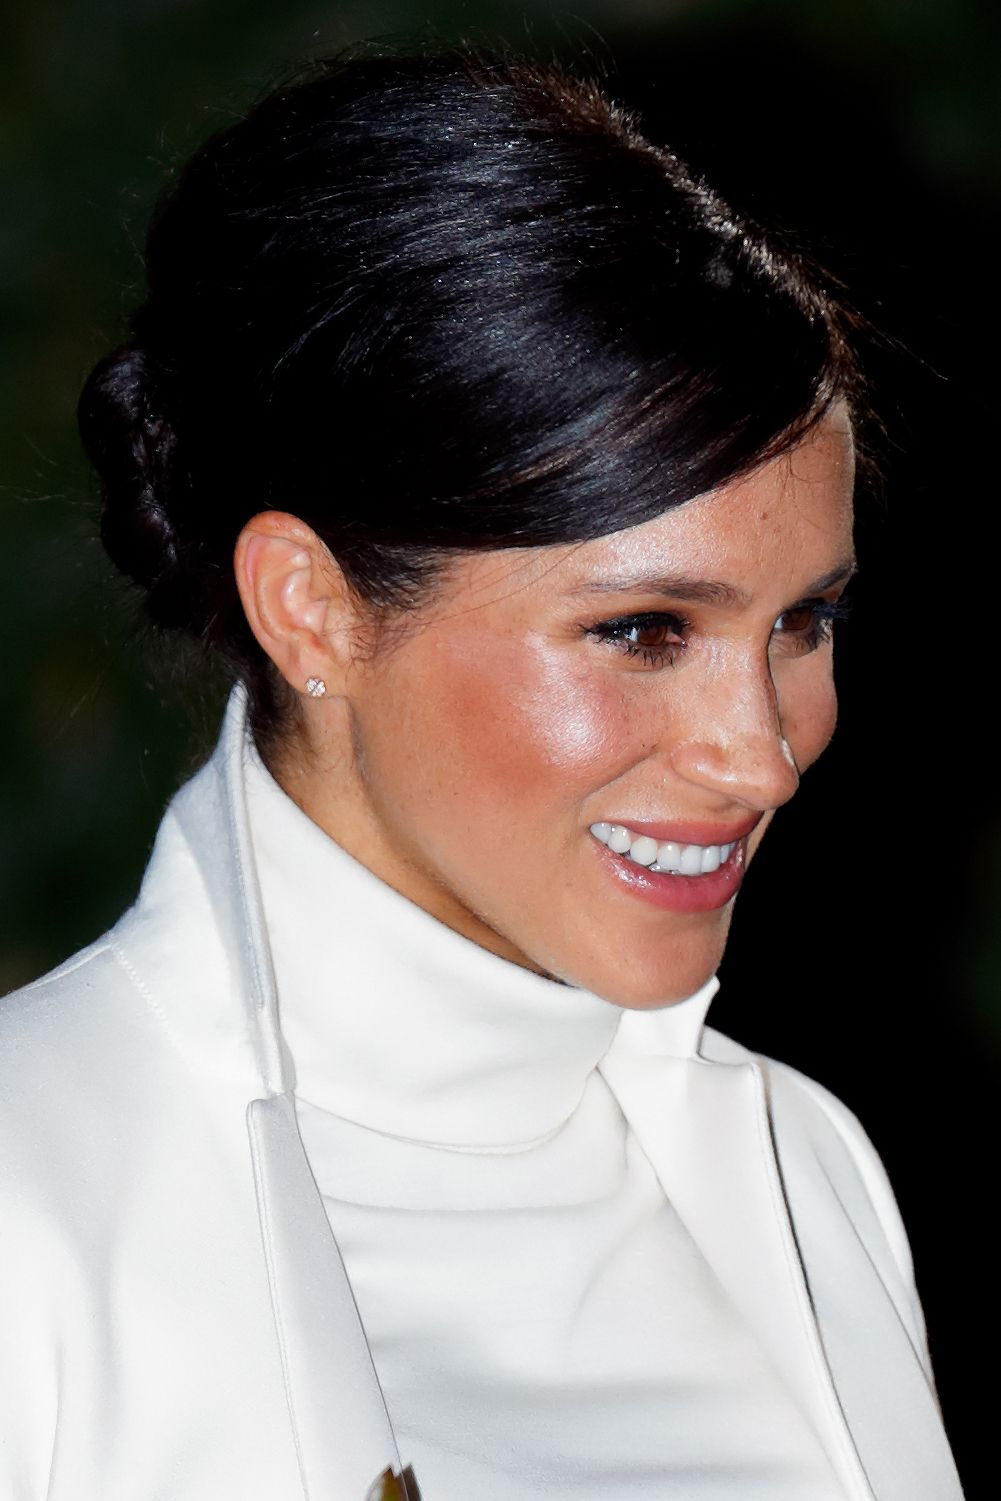 Meghan Markle Gala Makeup And Hair